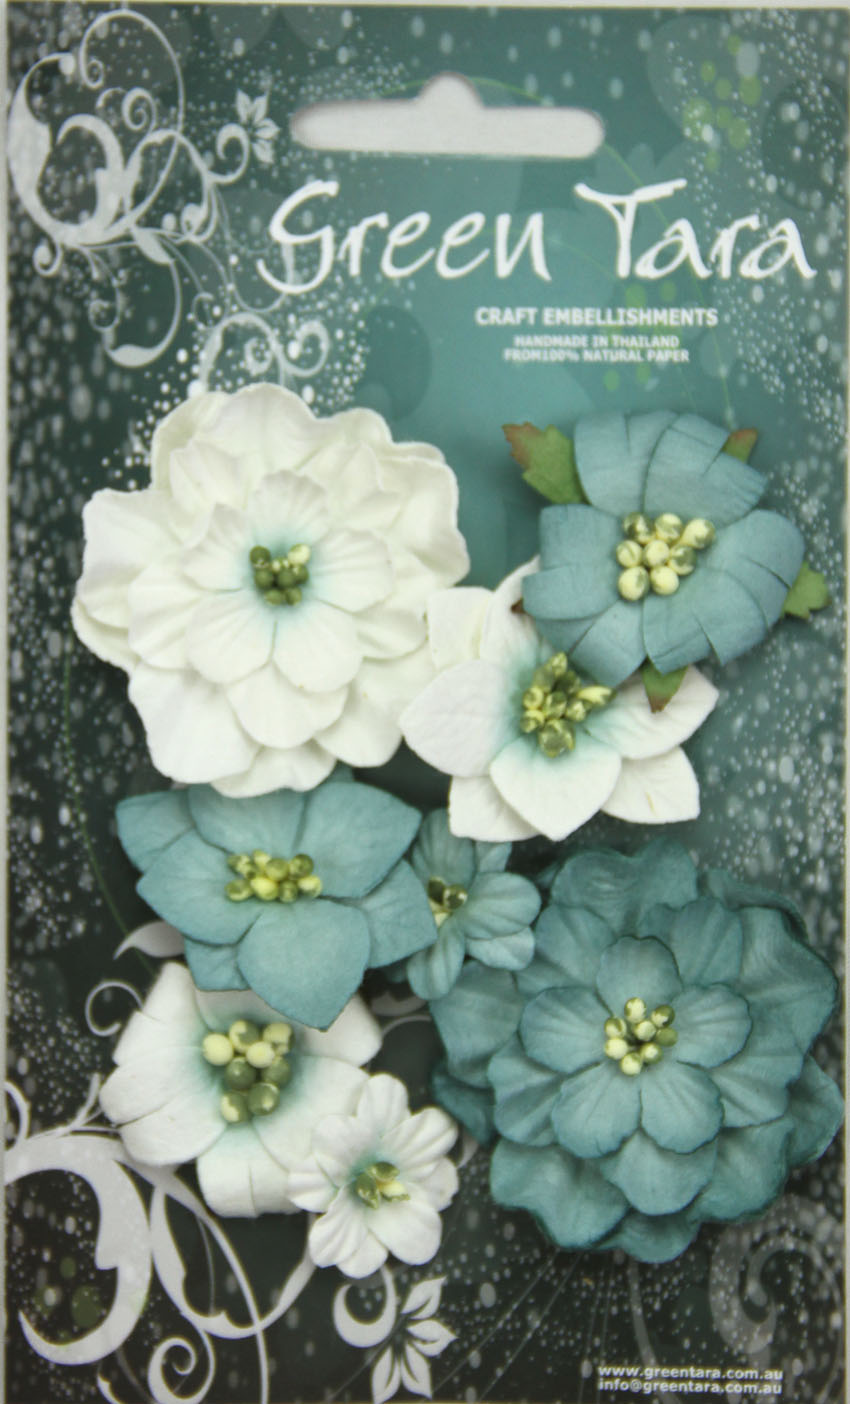 Fantasy Blooms - Pack of 8 Co-ordinated Flowers, BLUE